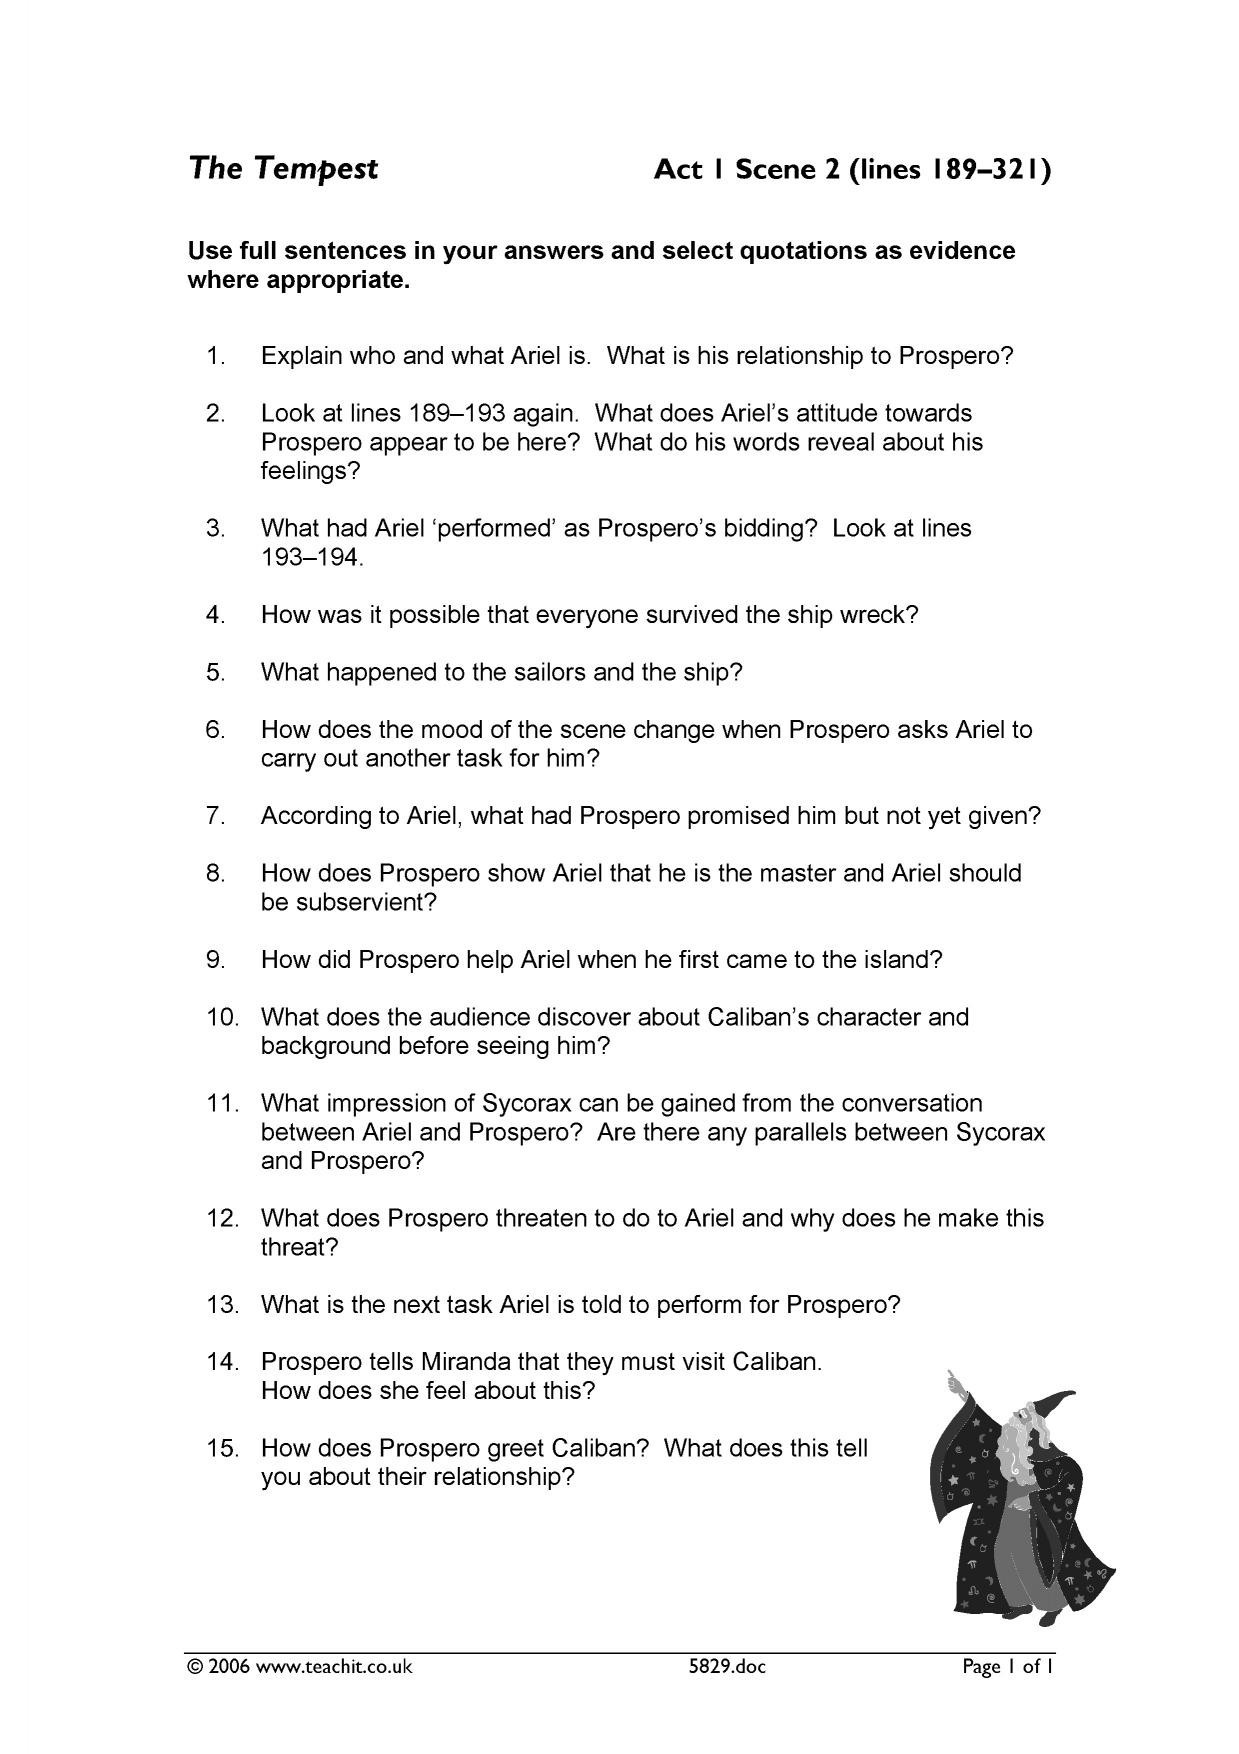 Drawing Conclusions Worksheets 4th Grade Drawing Conclusions Worksheet 2nd Grade